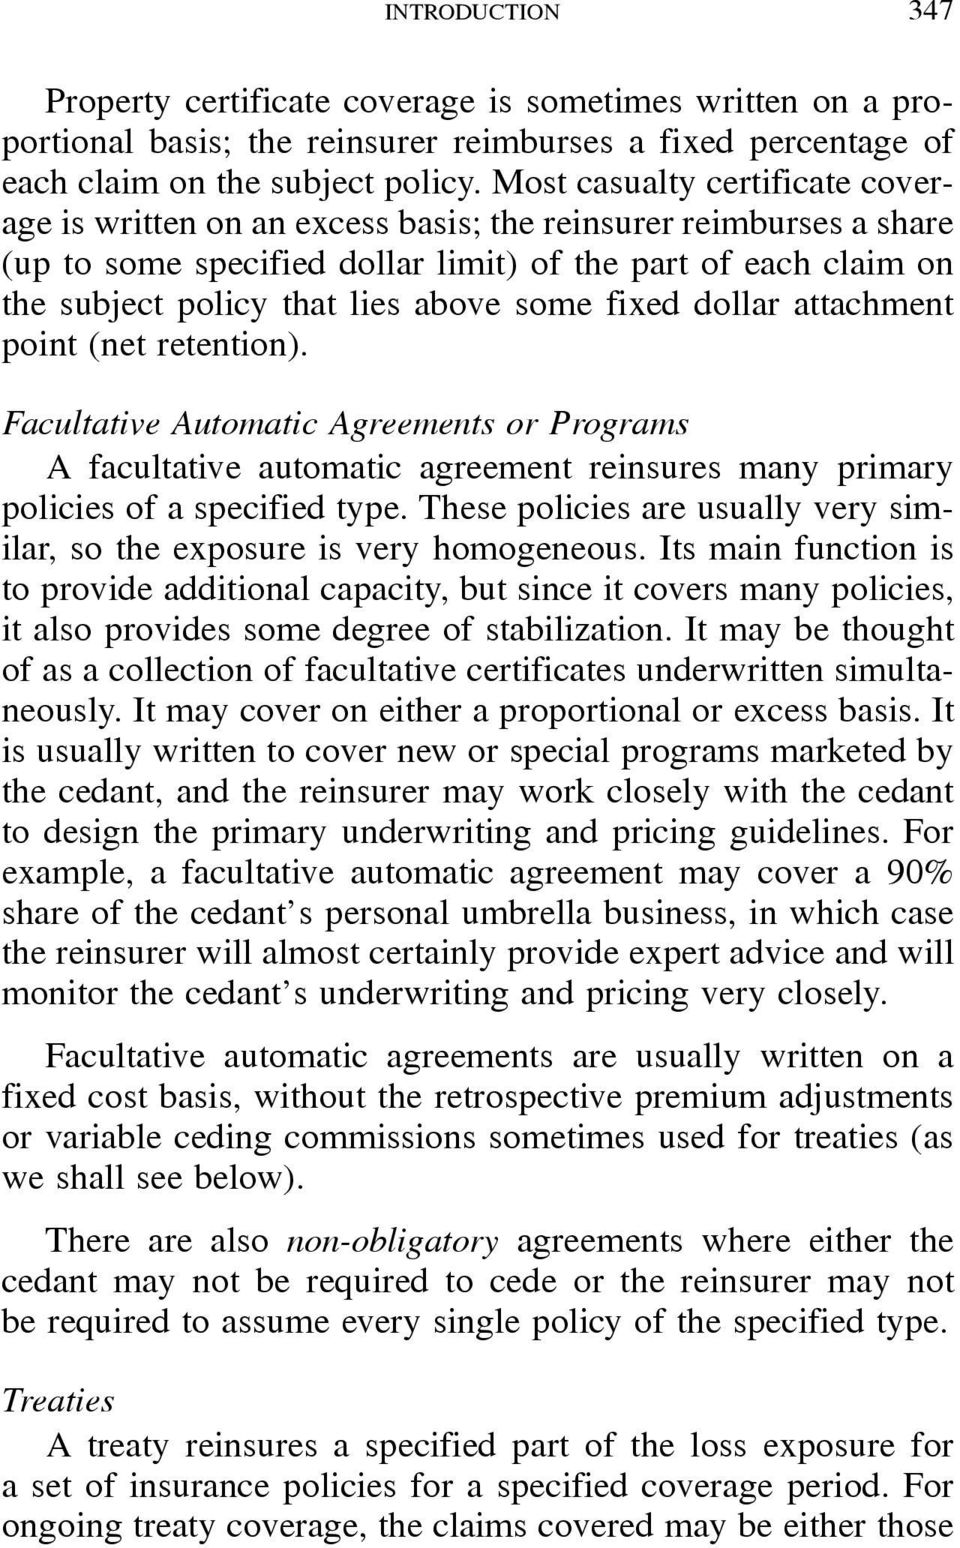 some fixed dollar attachment point(netretention). Facultative Automatic Agreements or Programs A facultative automatic agreement reinsures many primary policies of a specified type.